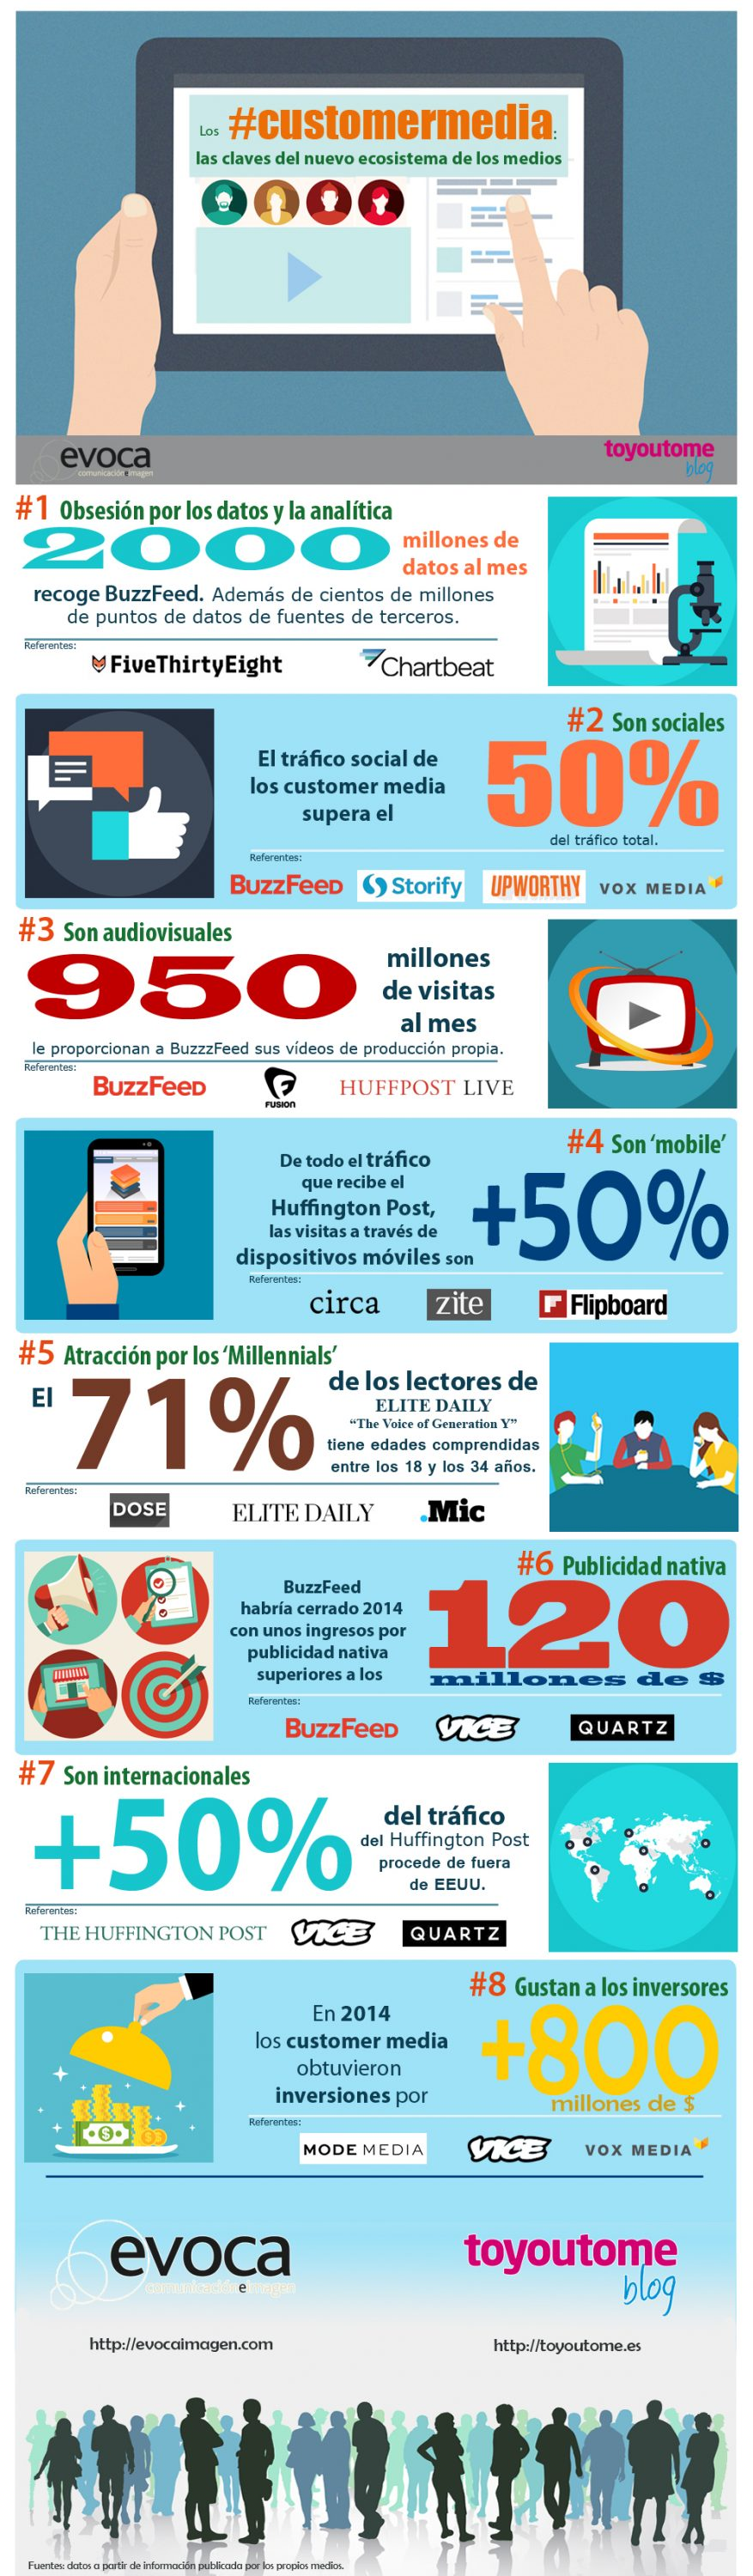 Claves-CustomerMedia-Infografia-Evoca-Toyoutomeblog